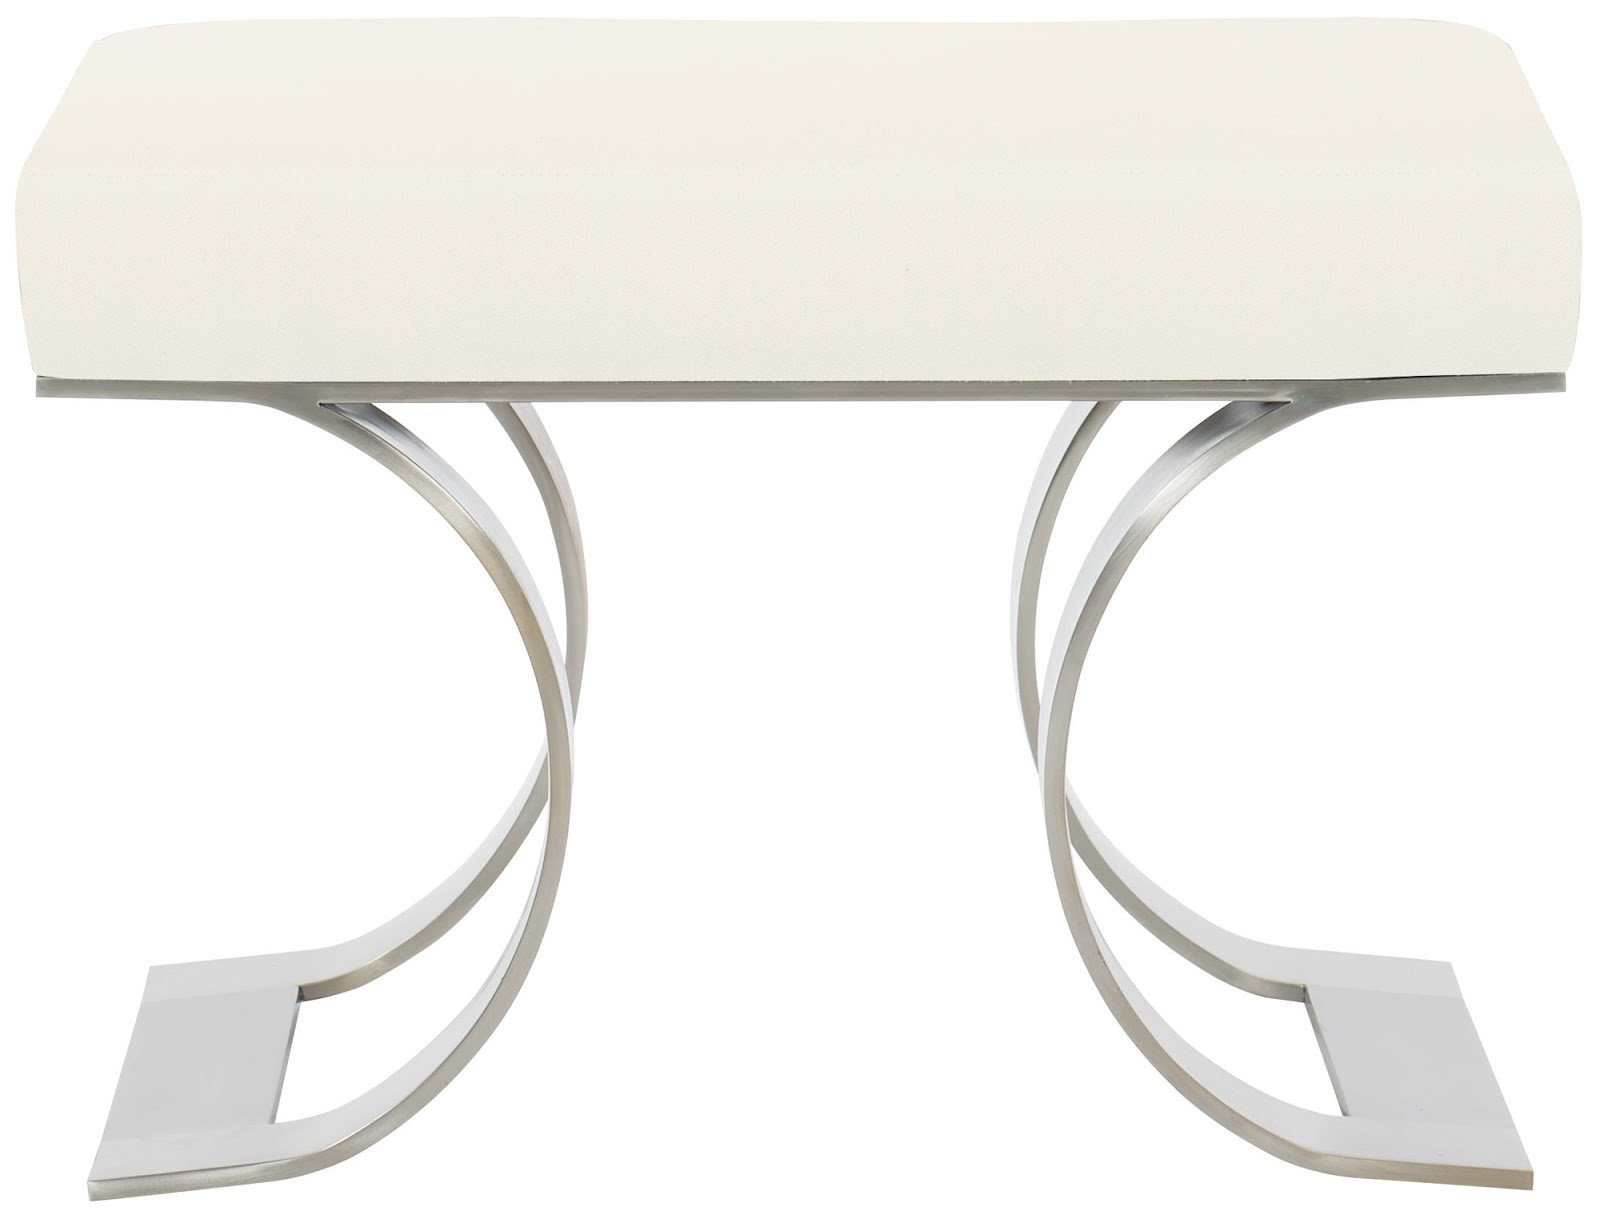 Bernhardt, Axiom Bench Recommended Retail Price: £700. Valuation for 2030: £1,500. Valuation for 2040: £2,500 - 3,500